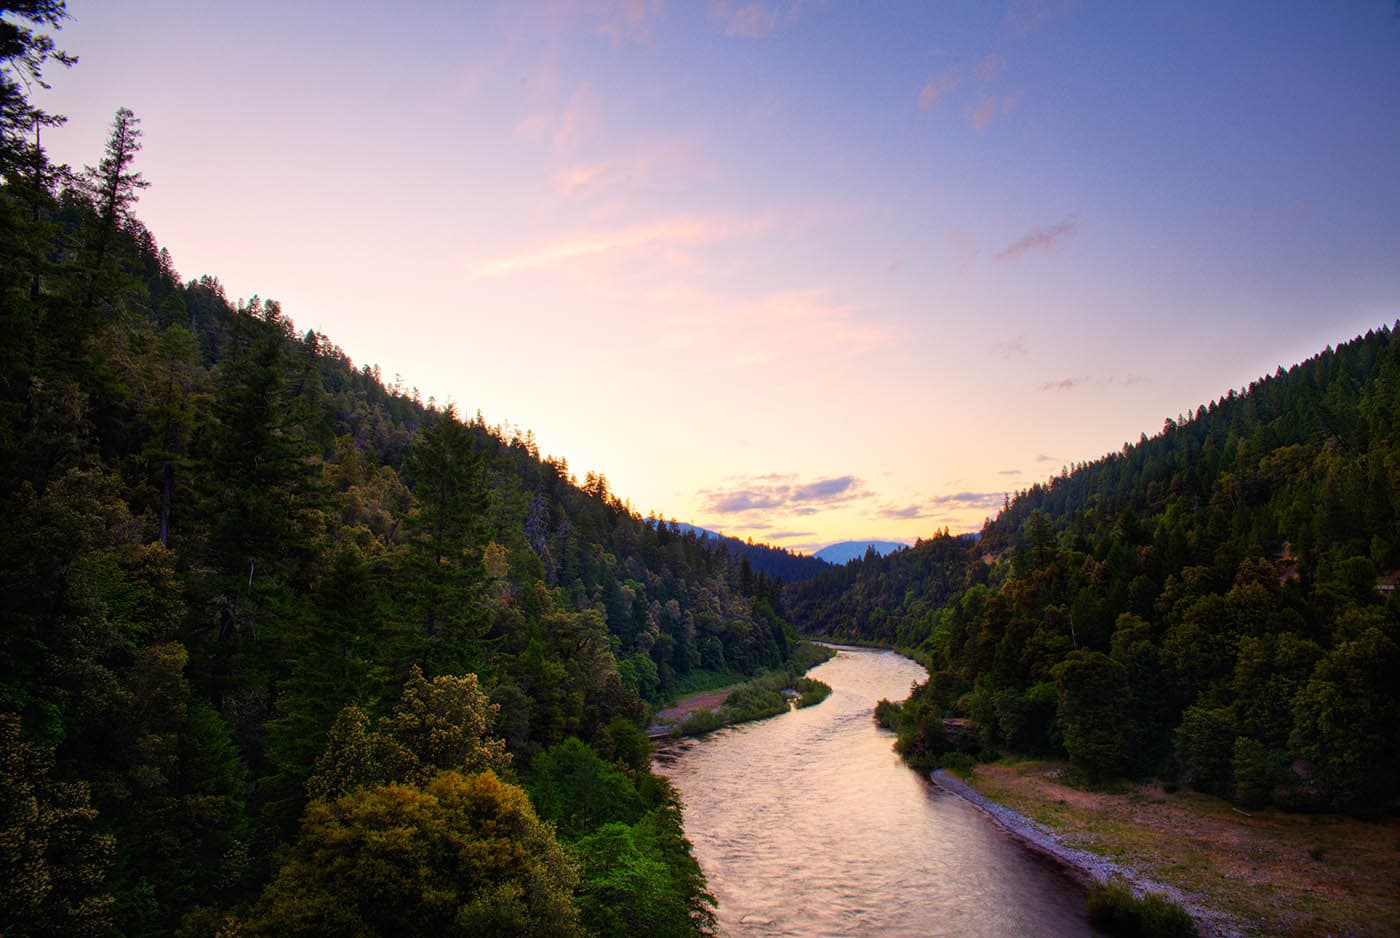 Mountain River in Northern California at sunset.